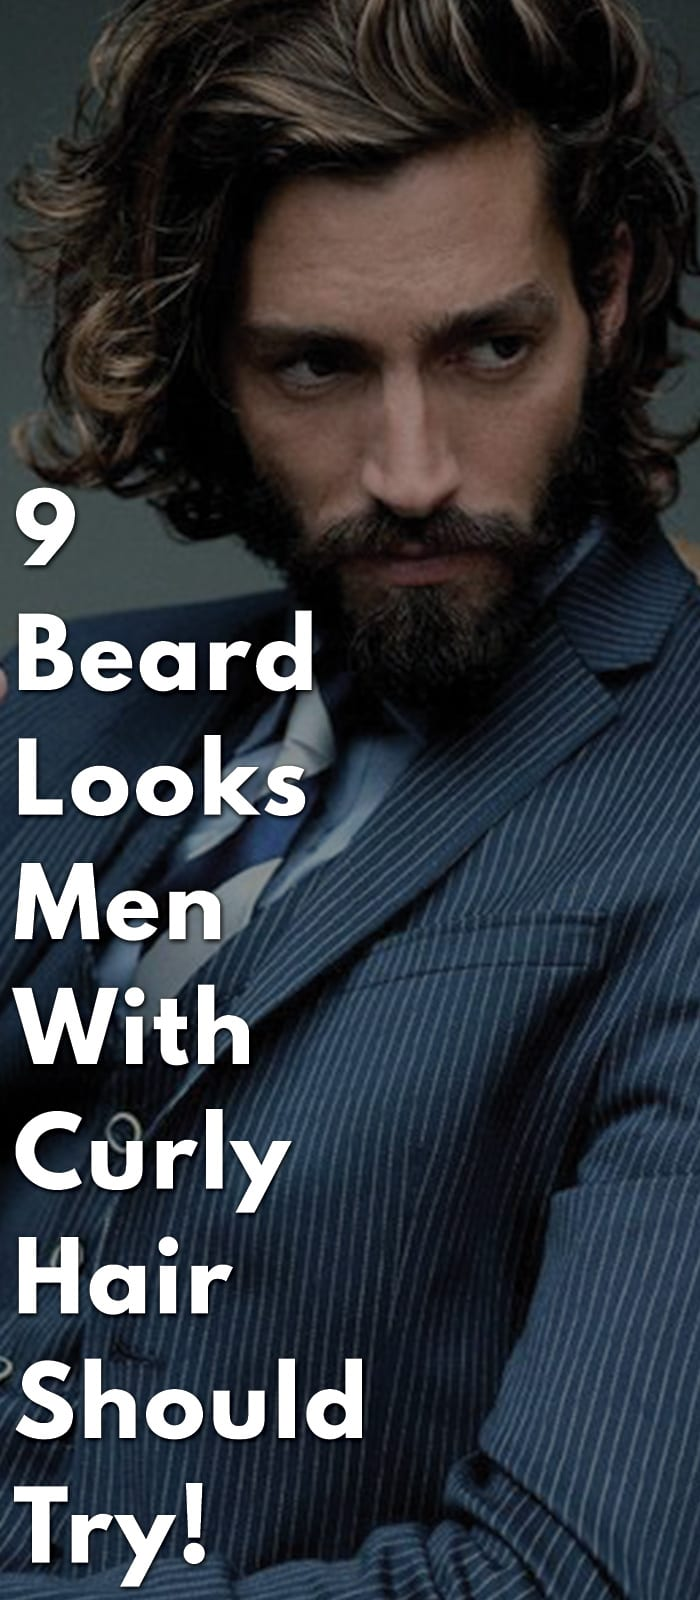 9-Beard-Looks-Men-With-Curly-Hair-Should-Try!